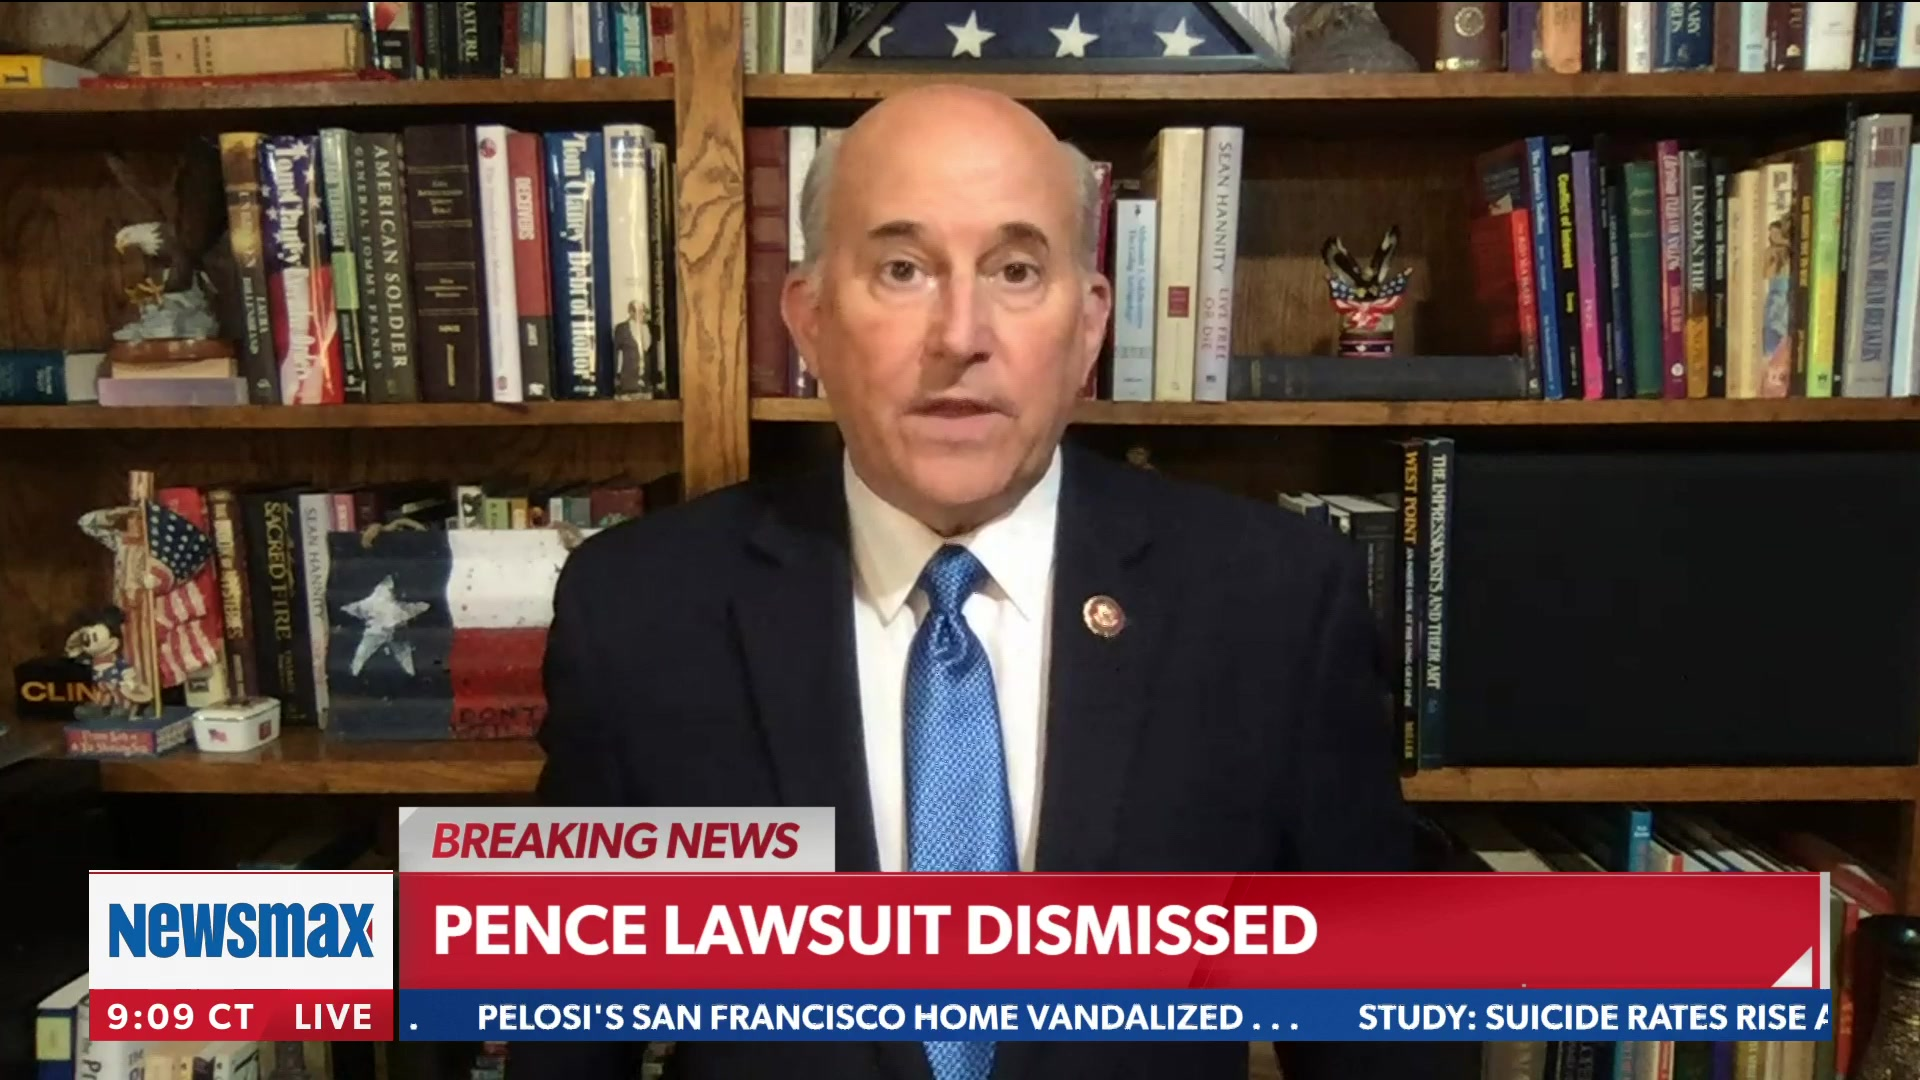 Gohmert's Response to Failed Election Lawsuit: 'Go to the Streets' and 'Be as Violent as' Left-Wing Groups